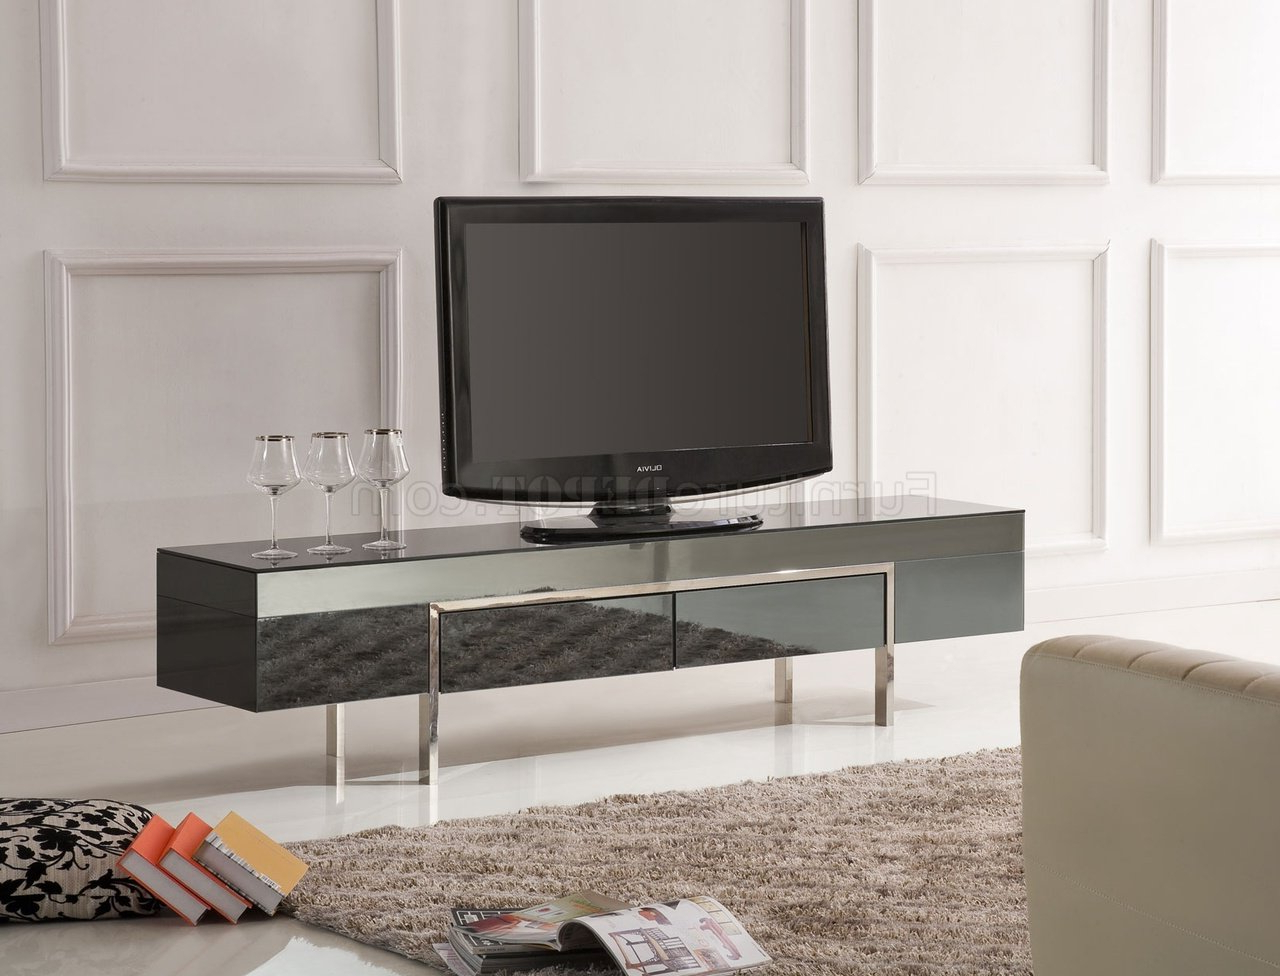 Black High Gloss Laquer Finish Modern Tv Stand W/metal Legs Throughout Modern Black Tv Stands On Wheels With Metal Cart (View 11 of 20)